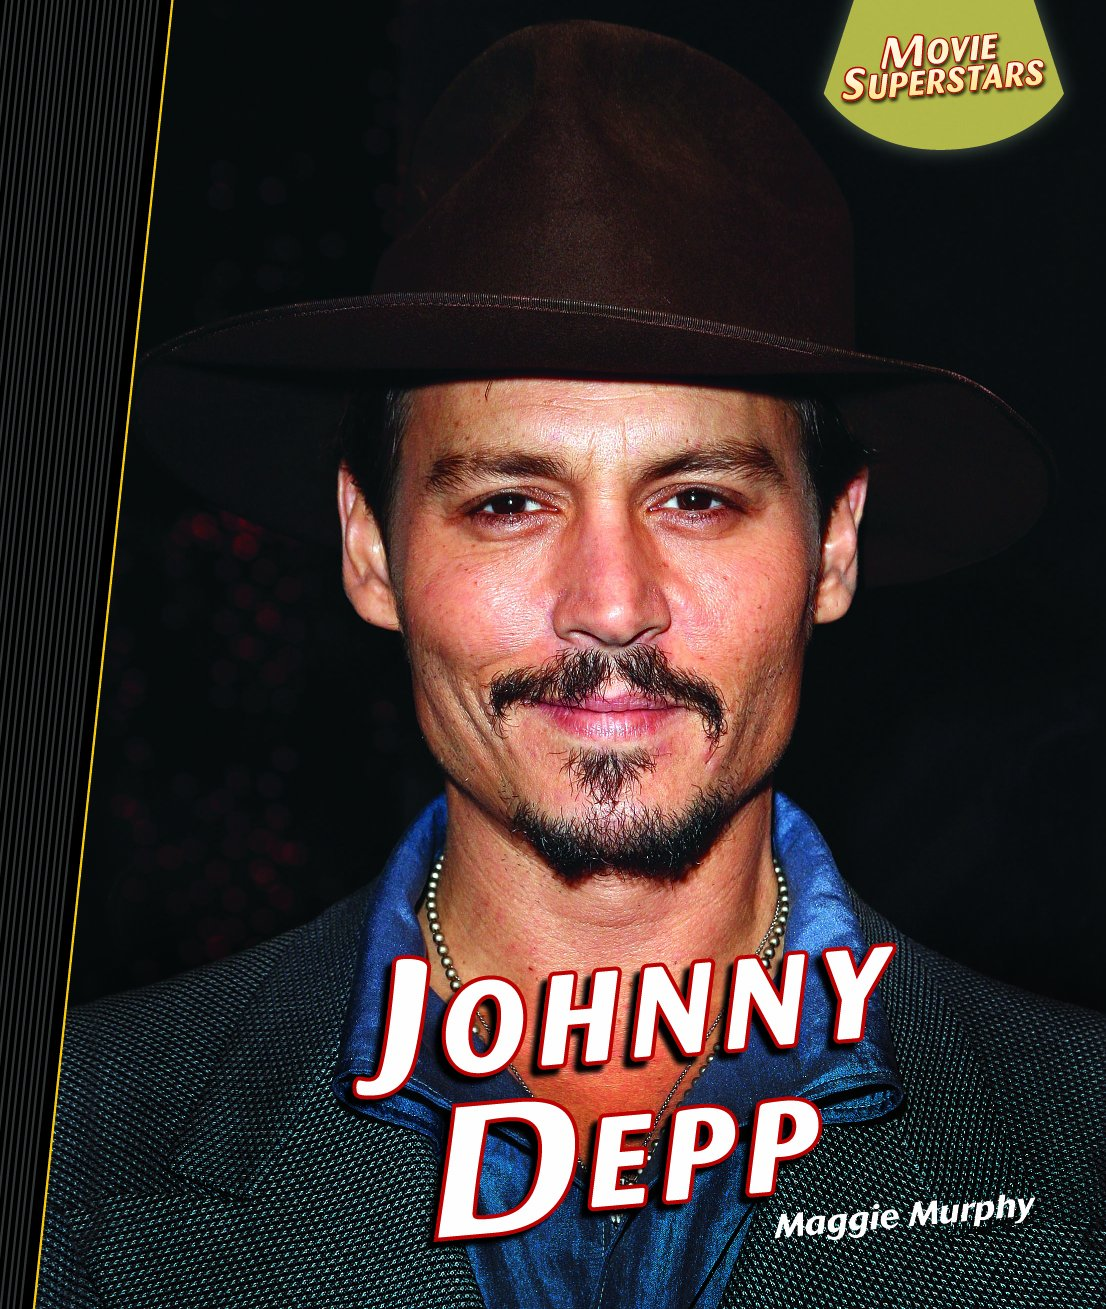 Johnny Depp (Movie Superstars)